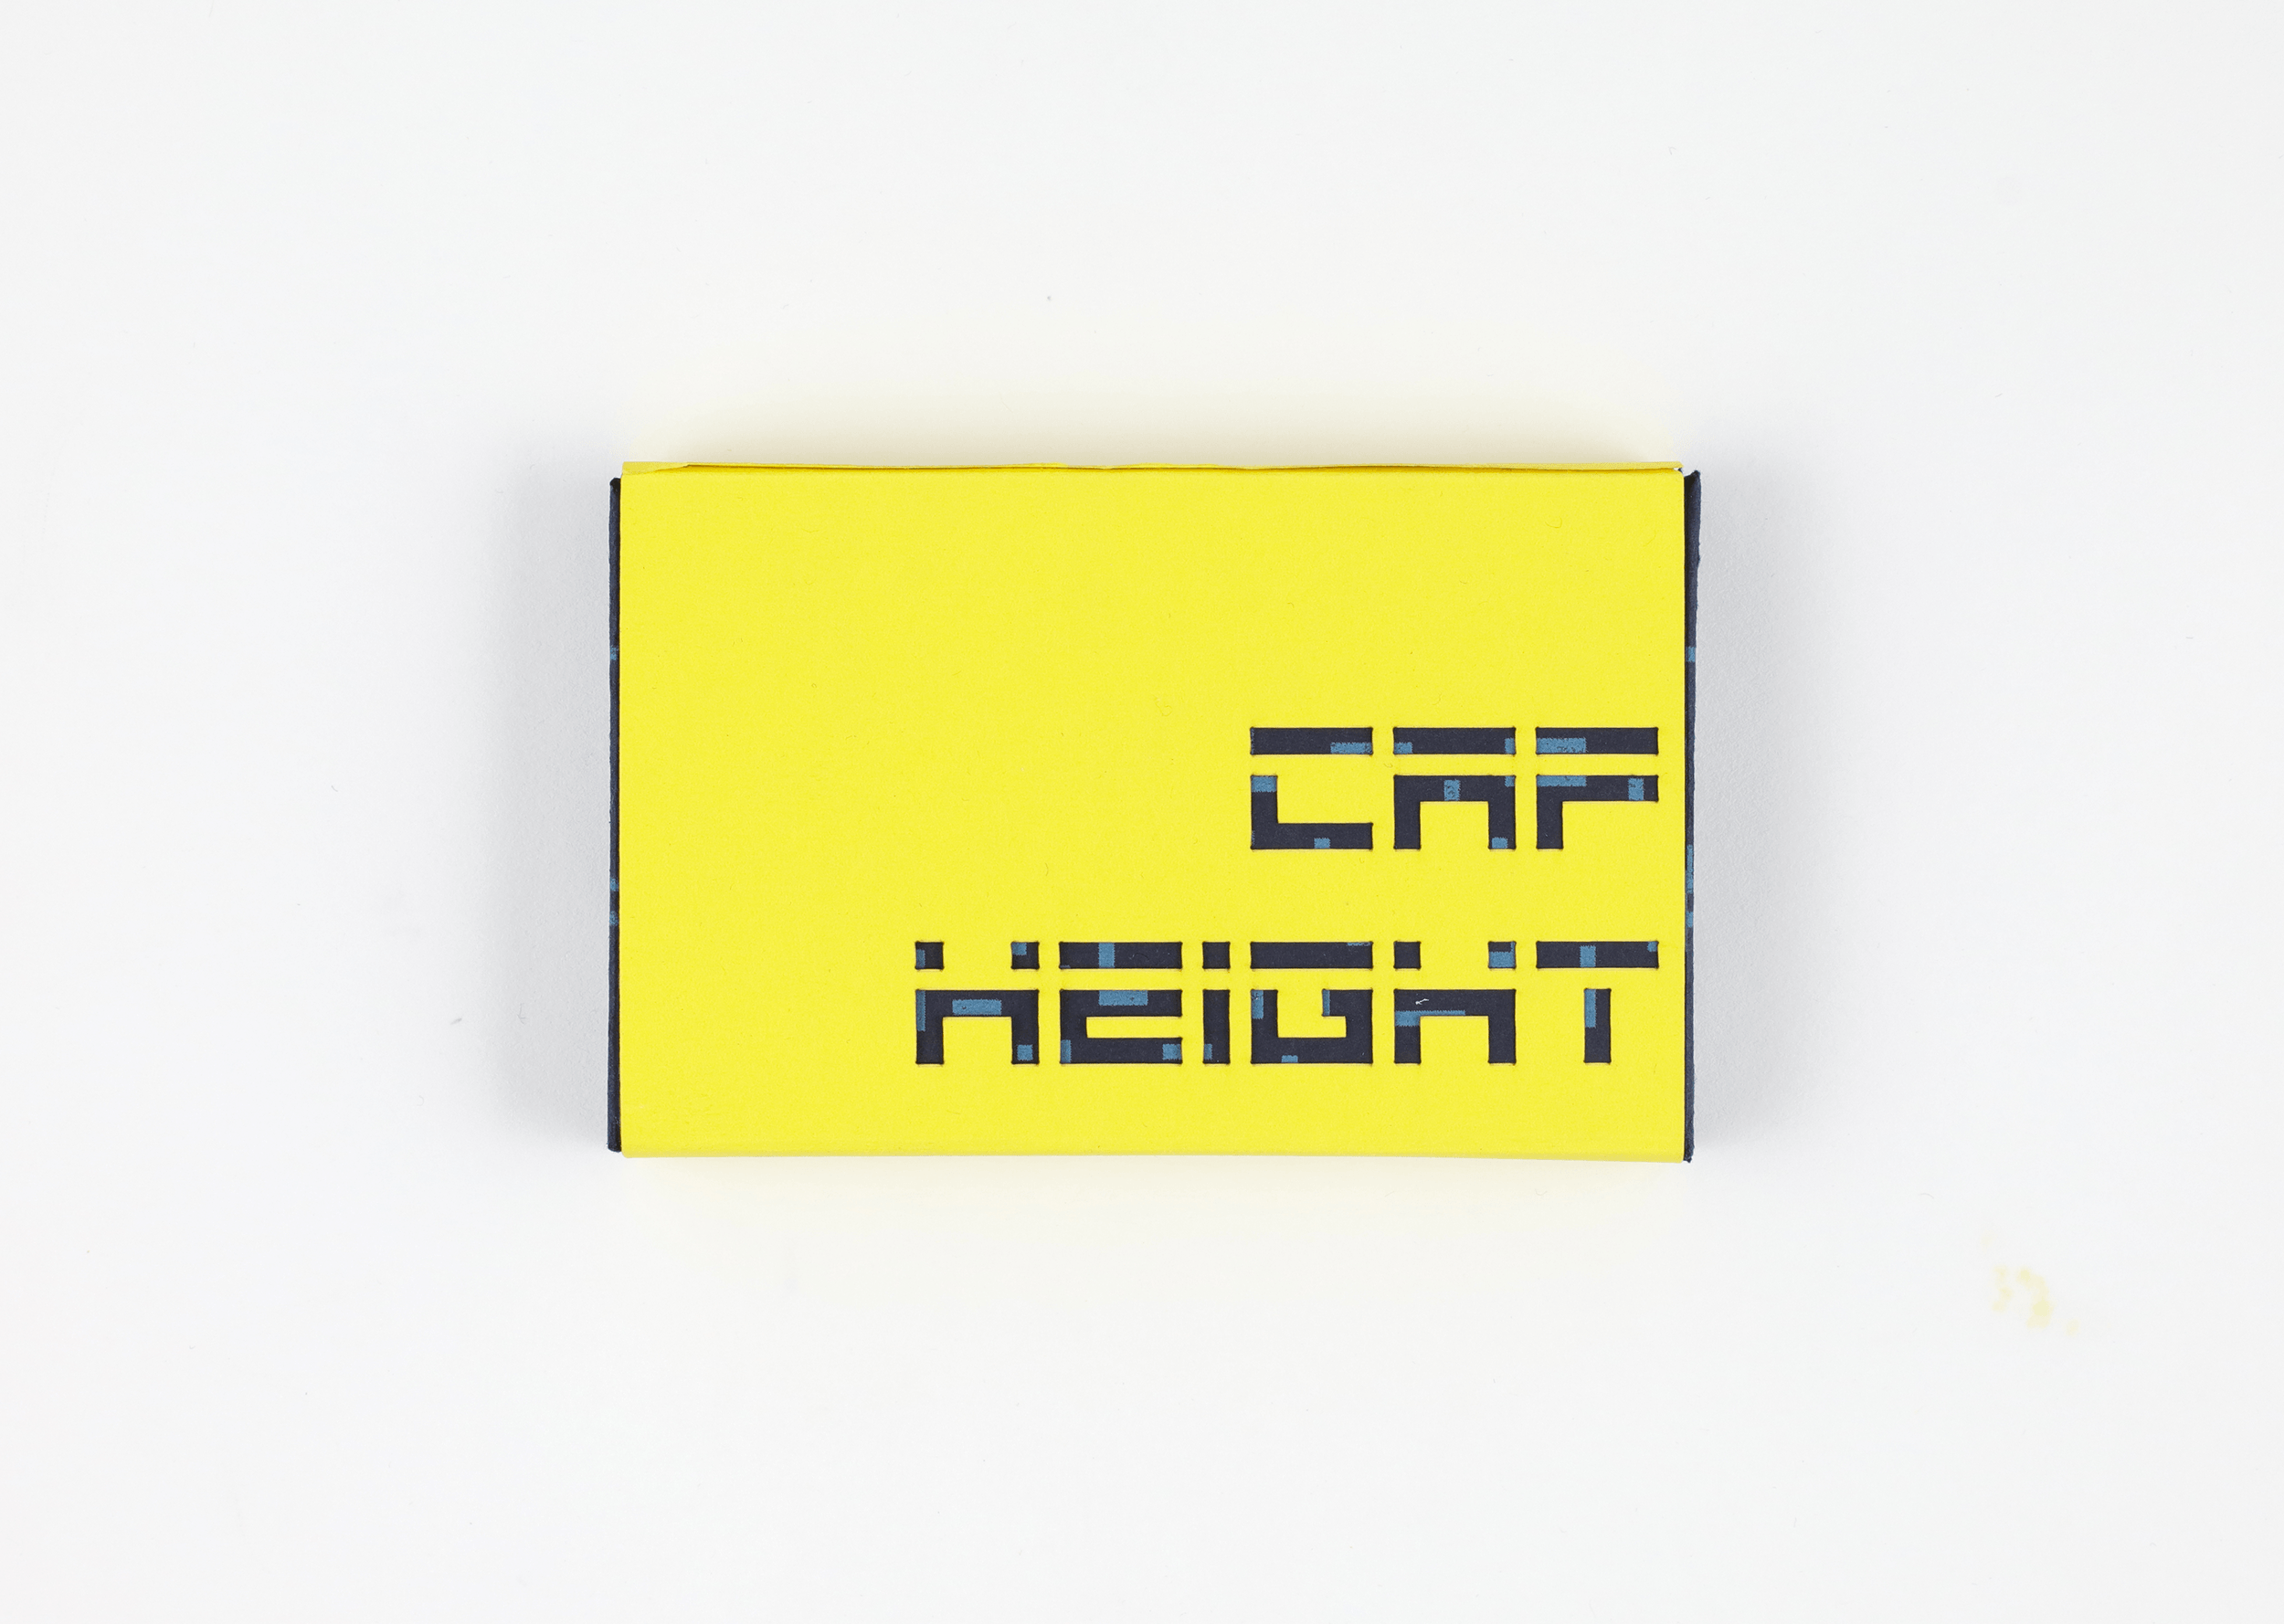 CapHeight14.png